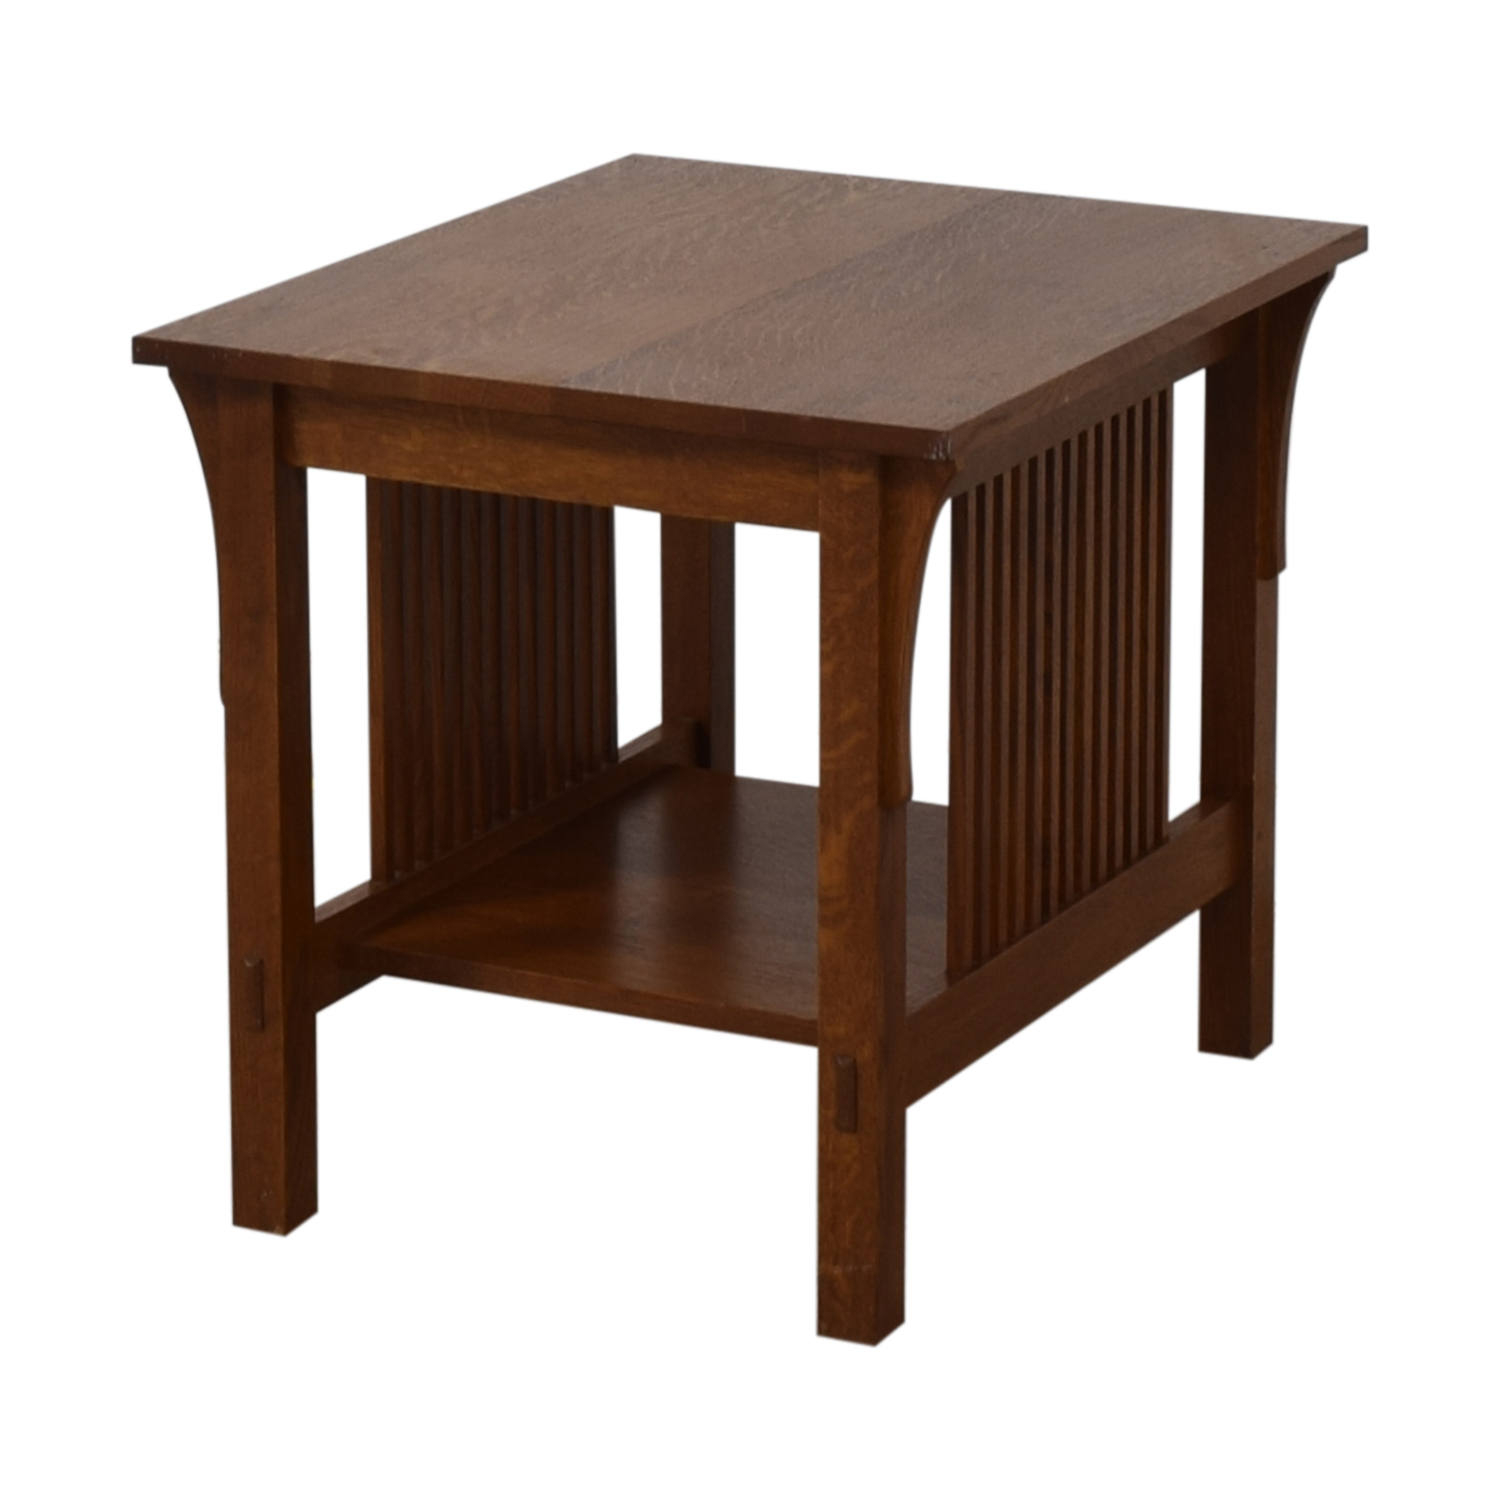 Stickley Furniture Stickley Mission End Table dimensions